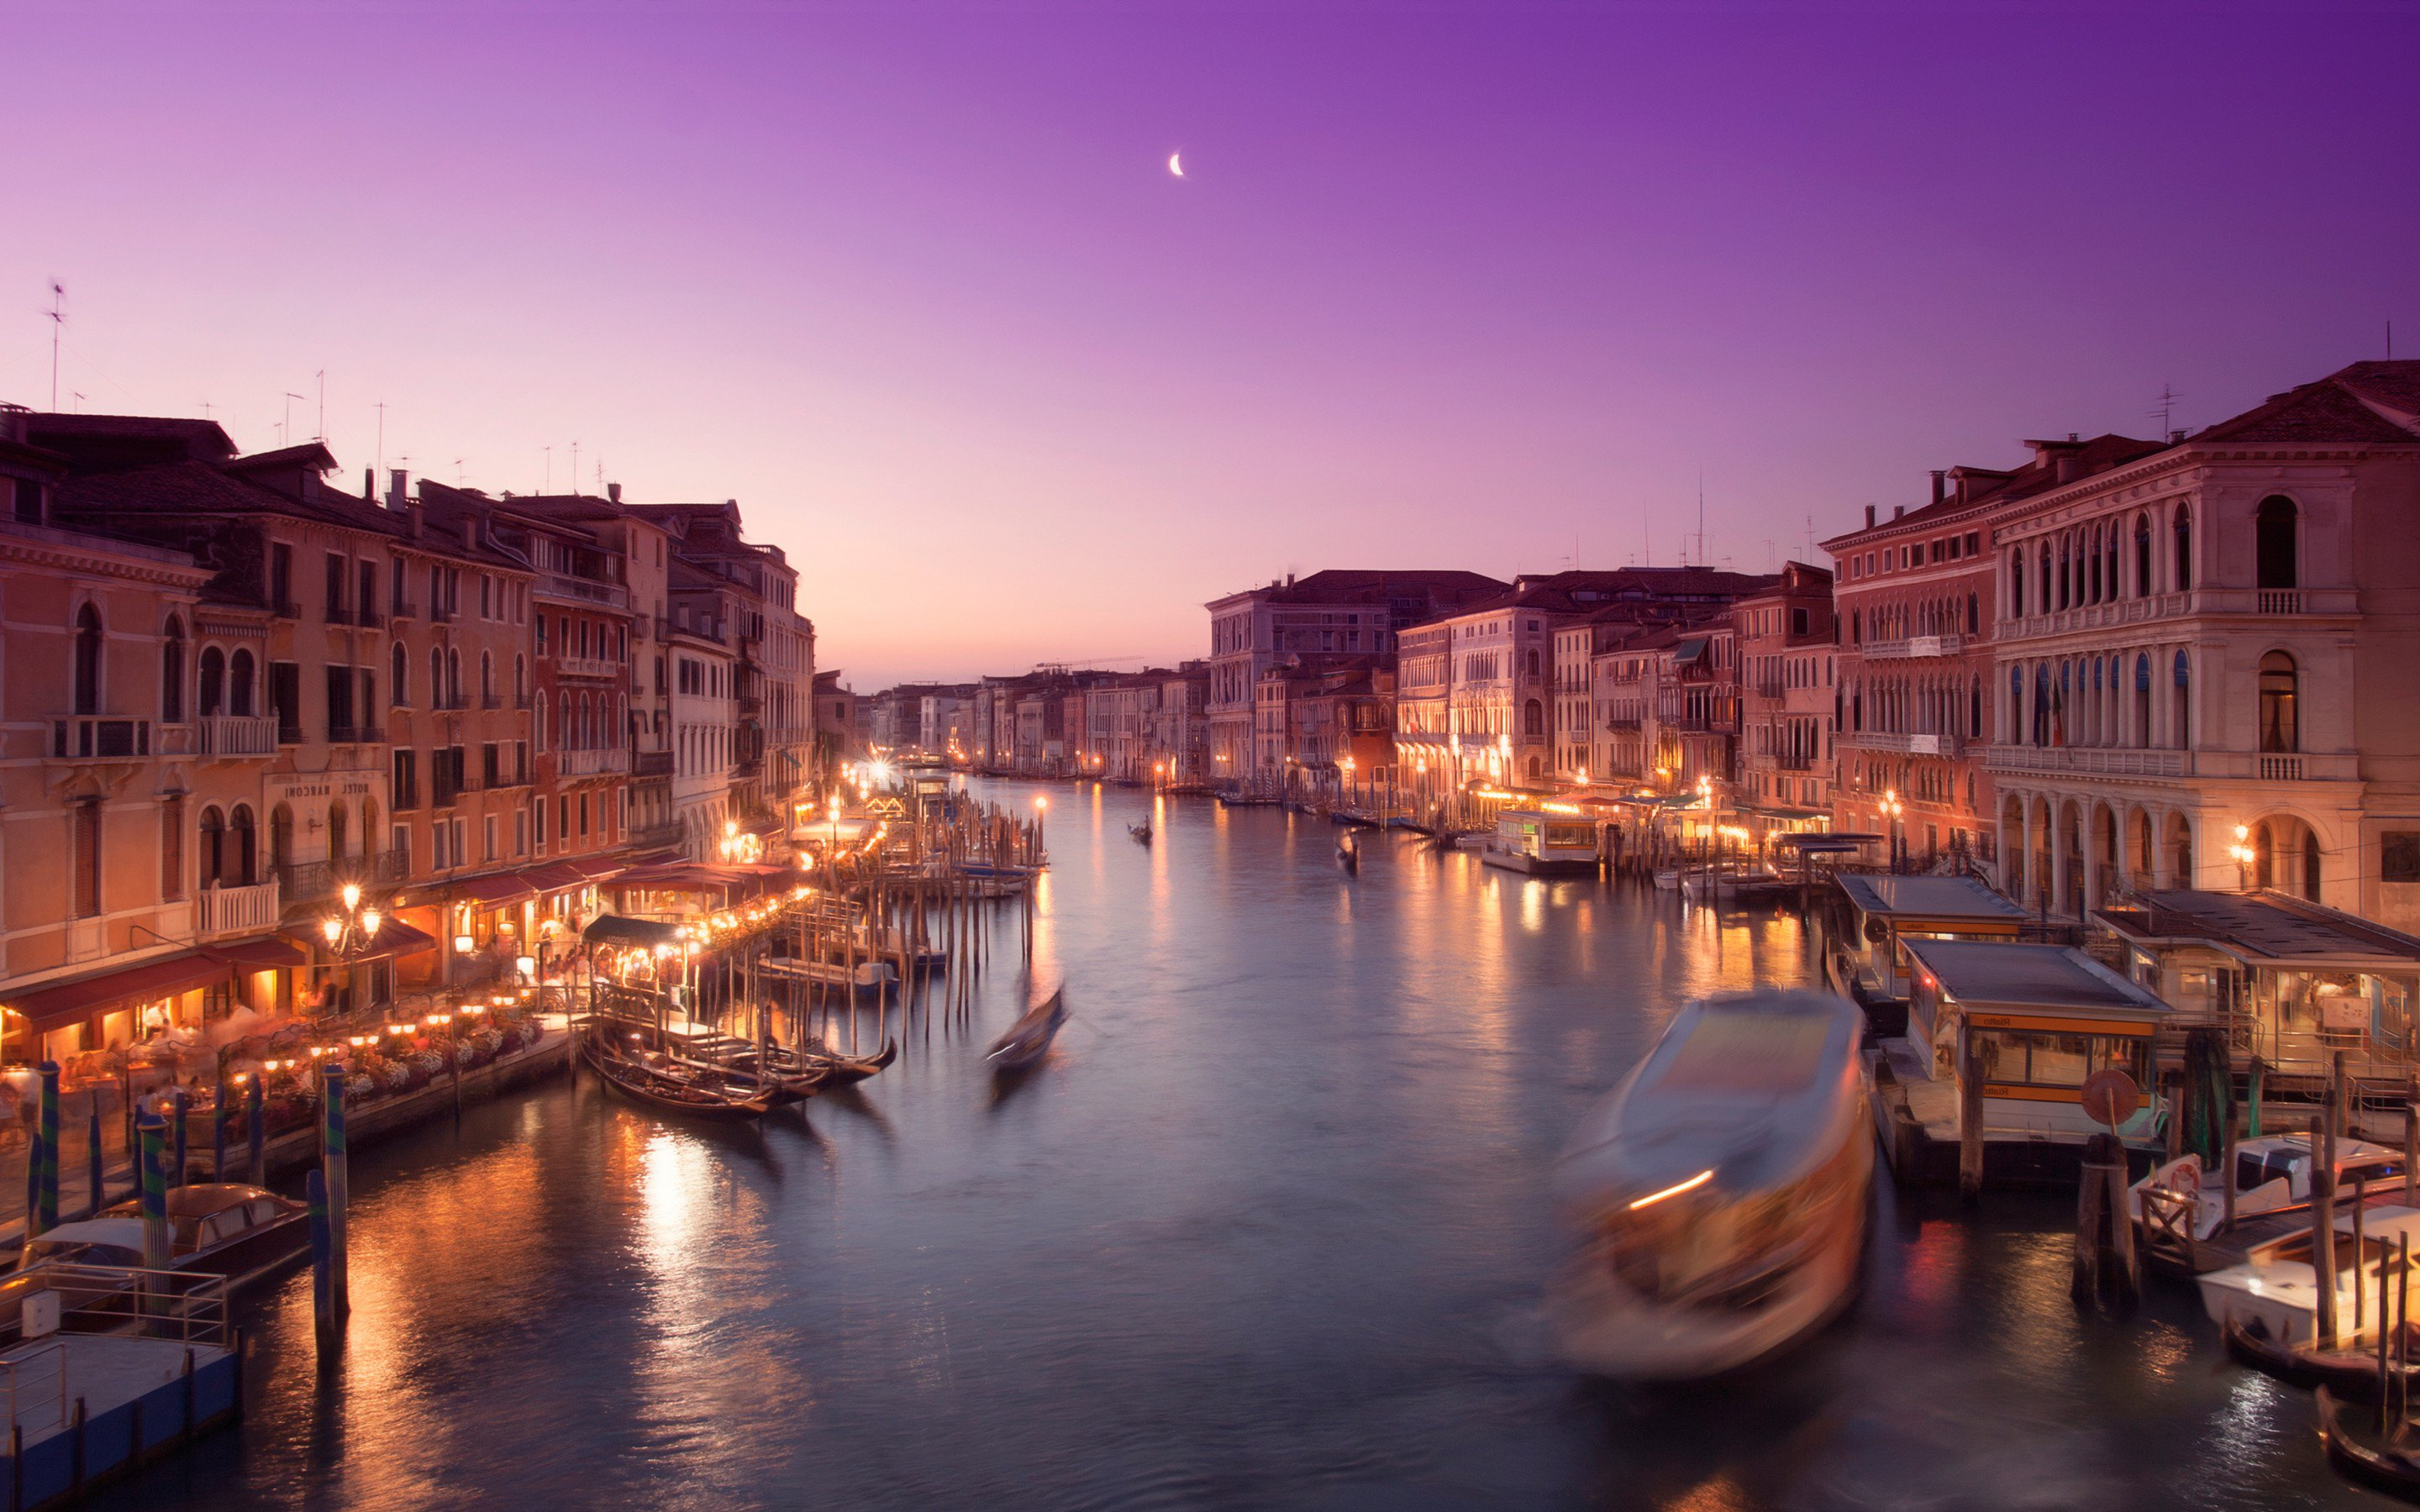 Download Cute Hd Wallpapers For Laptop Venice Hd World 4k Wallpapers Images Backgrounds